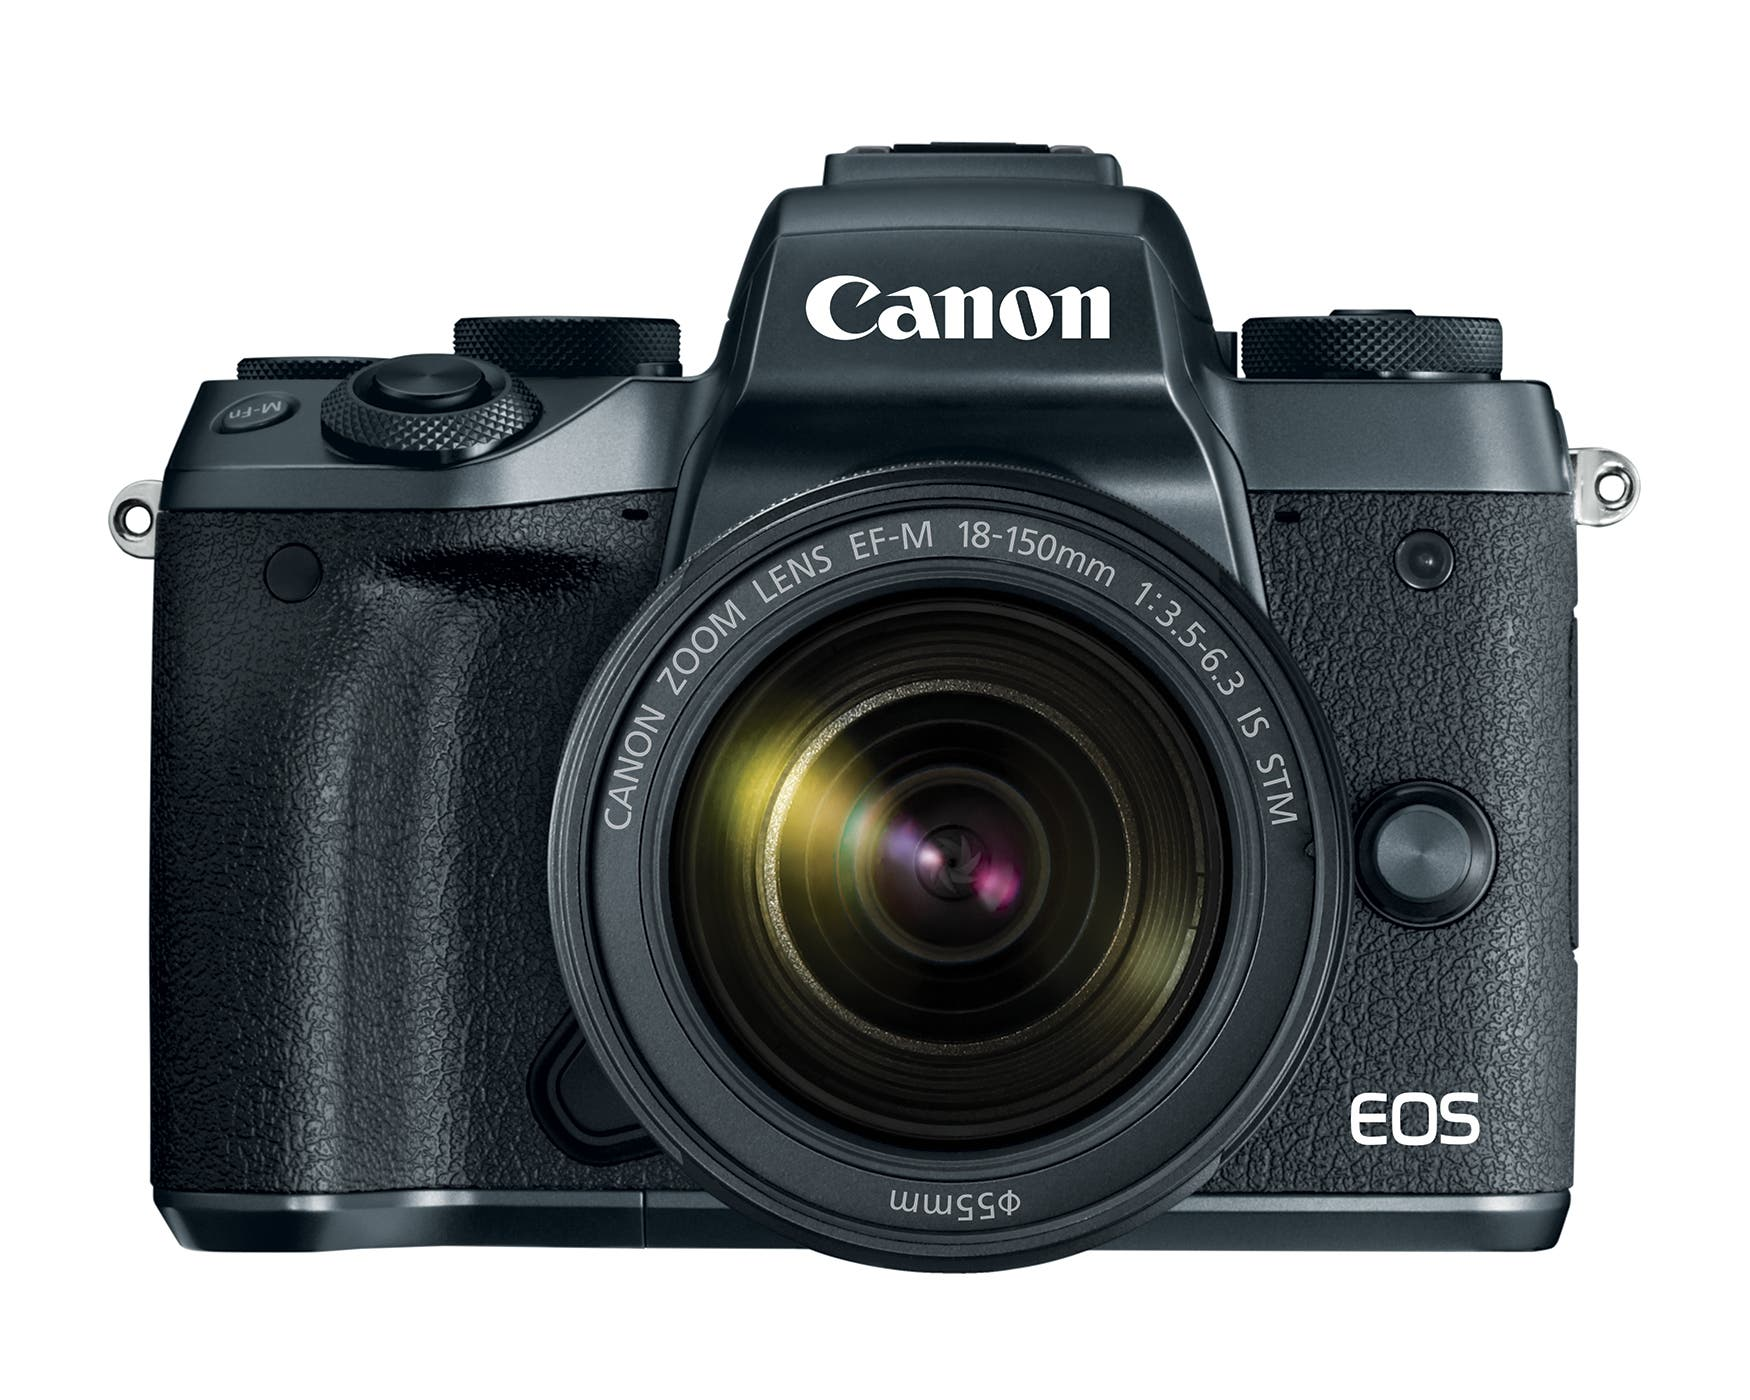 The Canon EOS M5: A Mirrorless Camera We Needed From 2 Years Ago